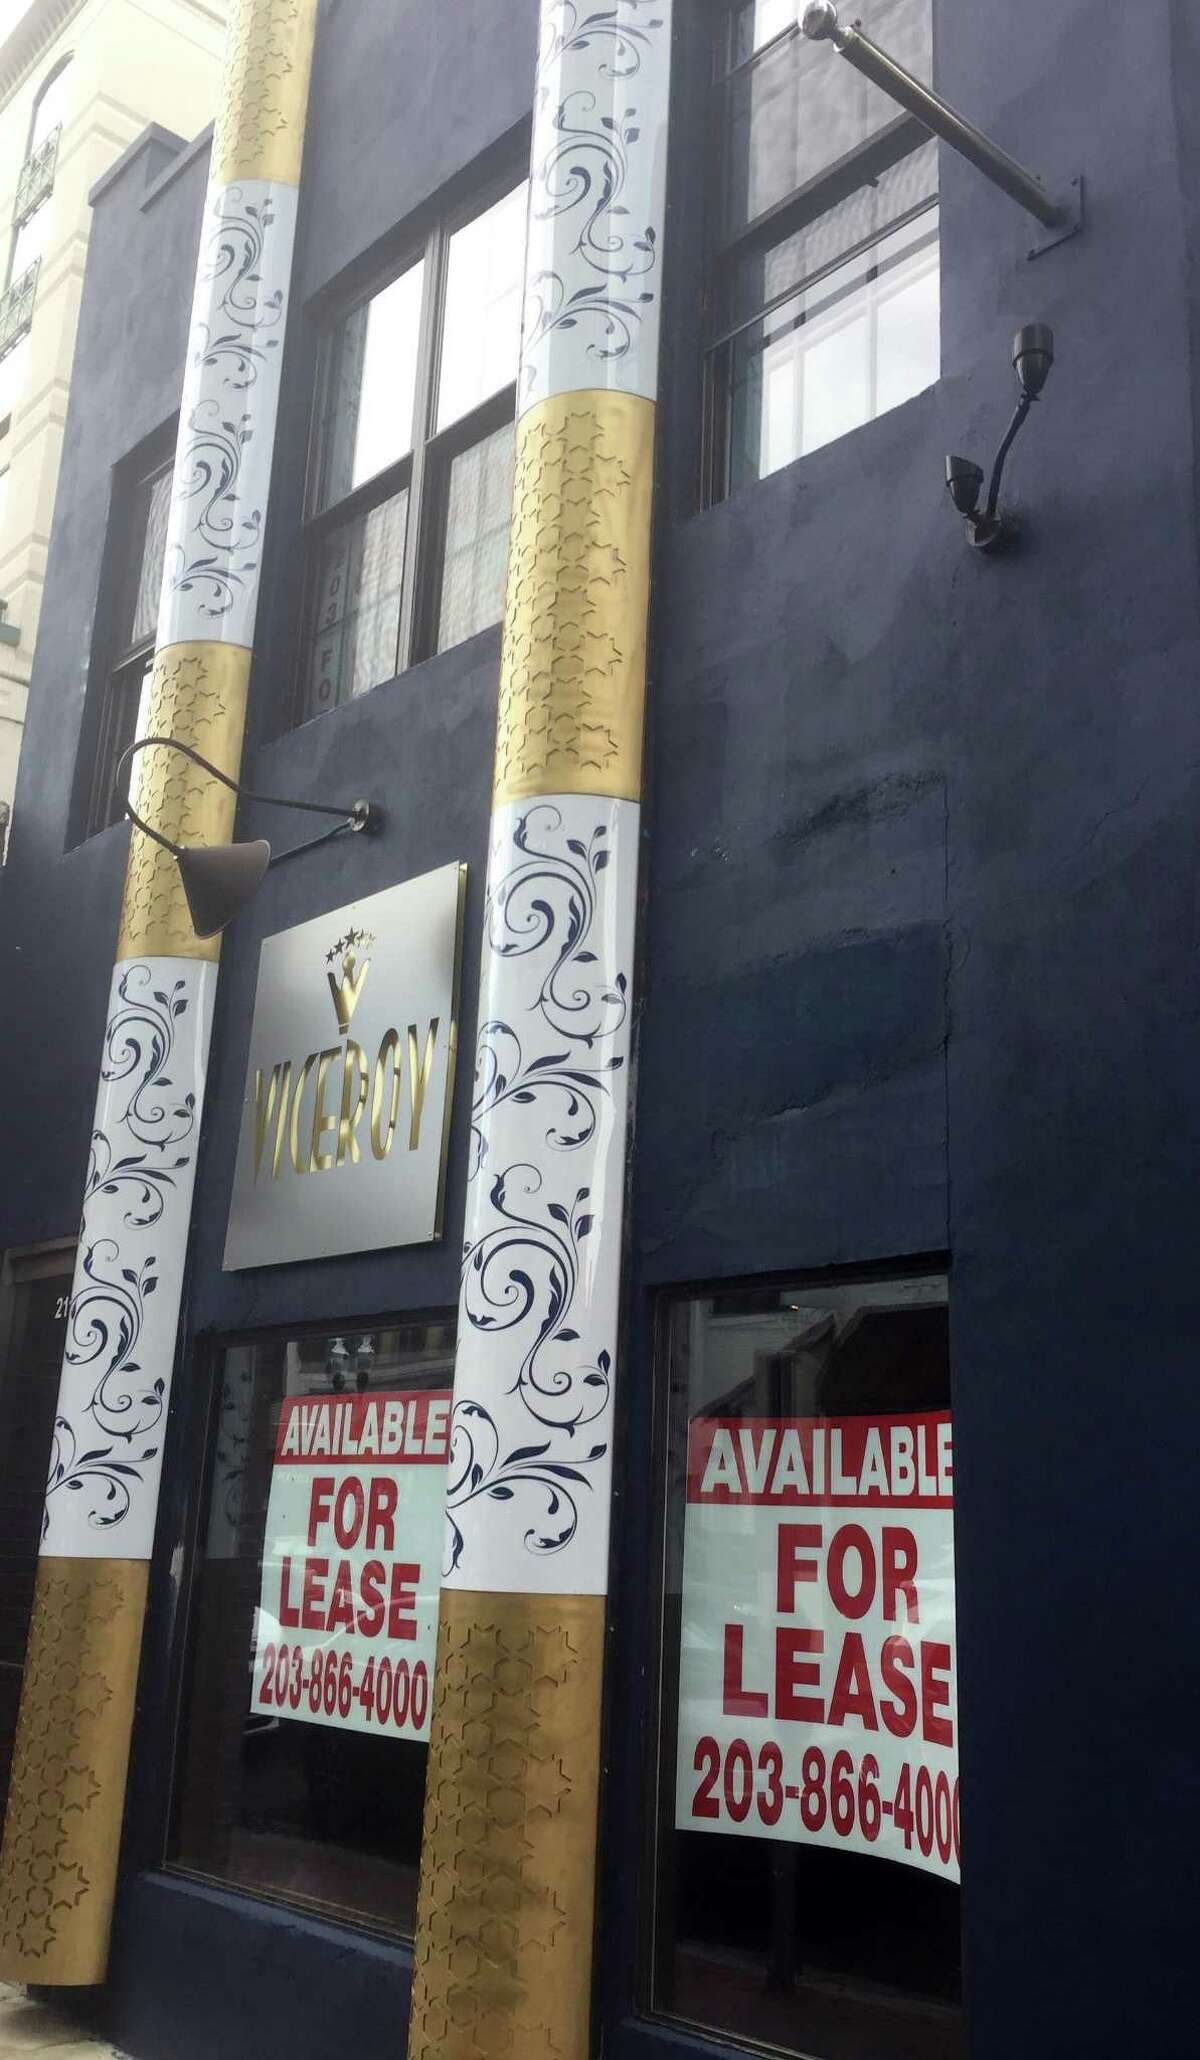 Viceroy Publik House has closed after an approximately three-month run at 211 Summer St., in downtown Stamford.